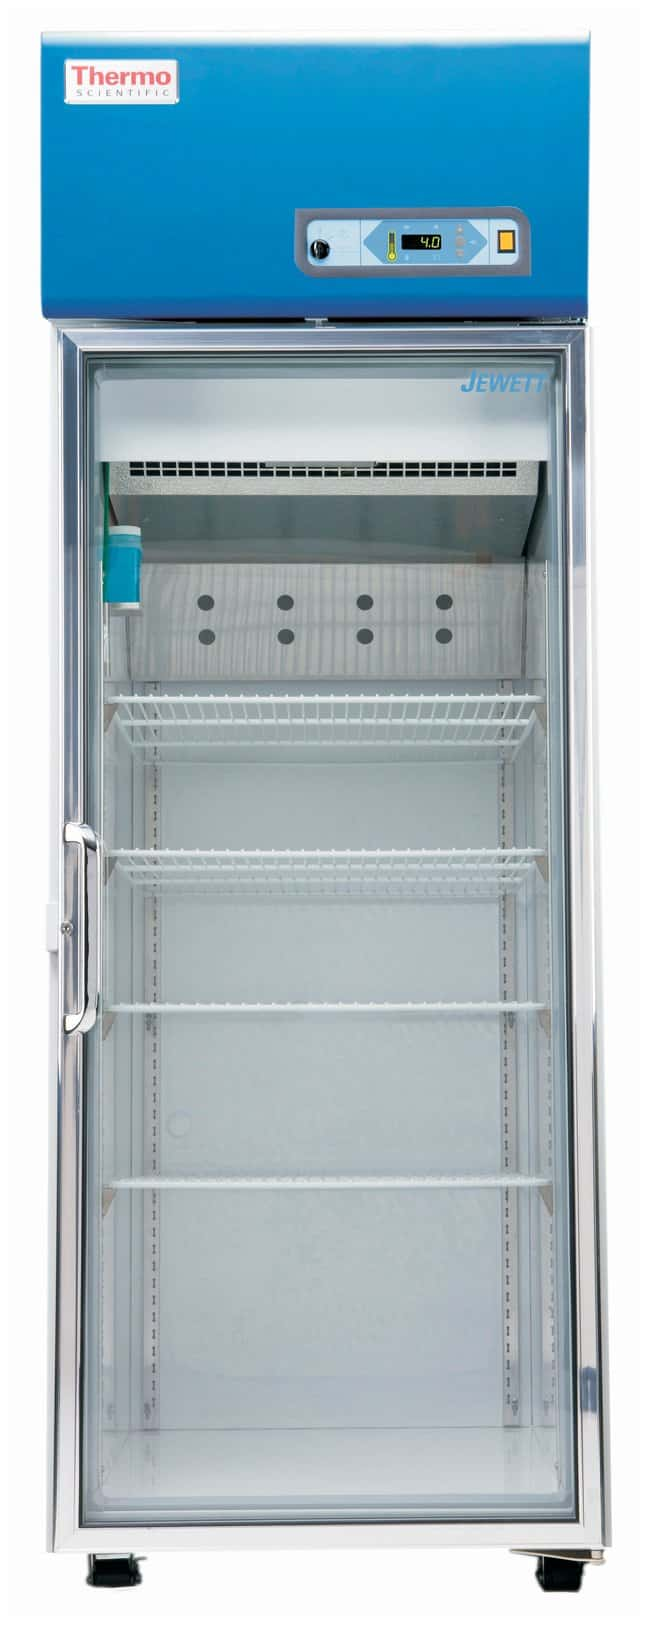 Thermo Scientific Jewett High-Performance Refrigerators with Glass Doors:BioPharmaceutical